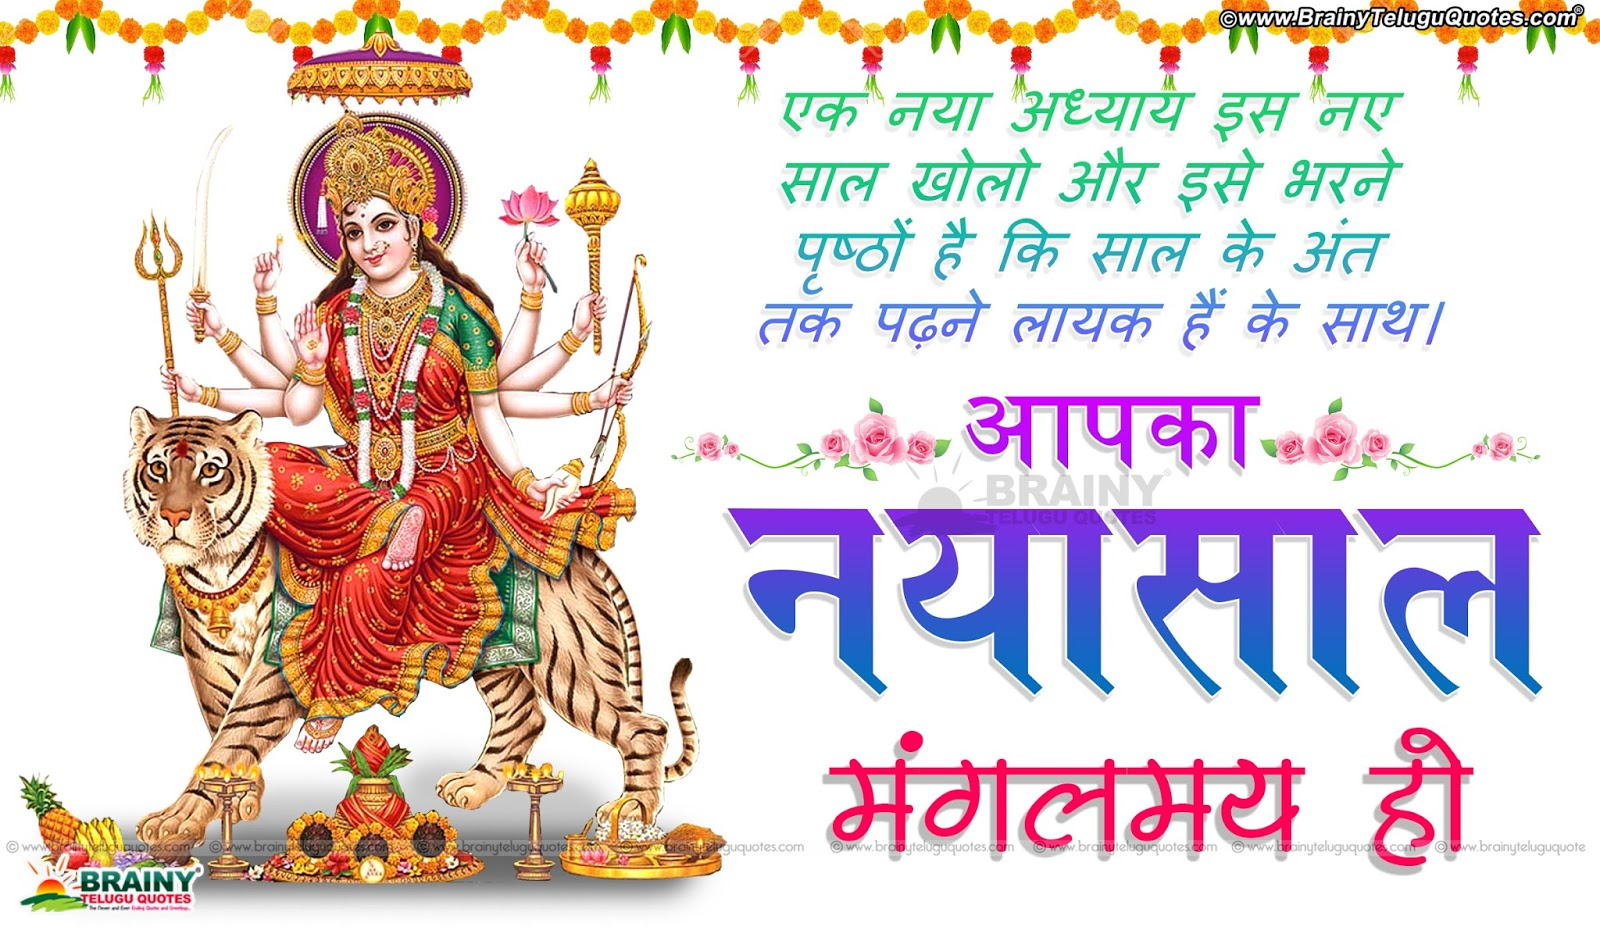 Best Latest 5 Hindi Inspirational New Year 2017 Greetings Wishes